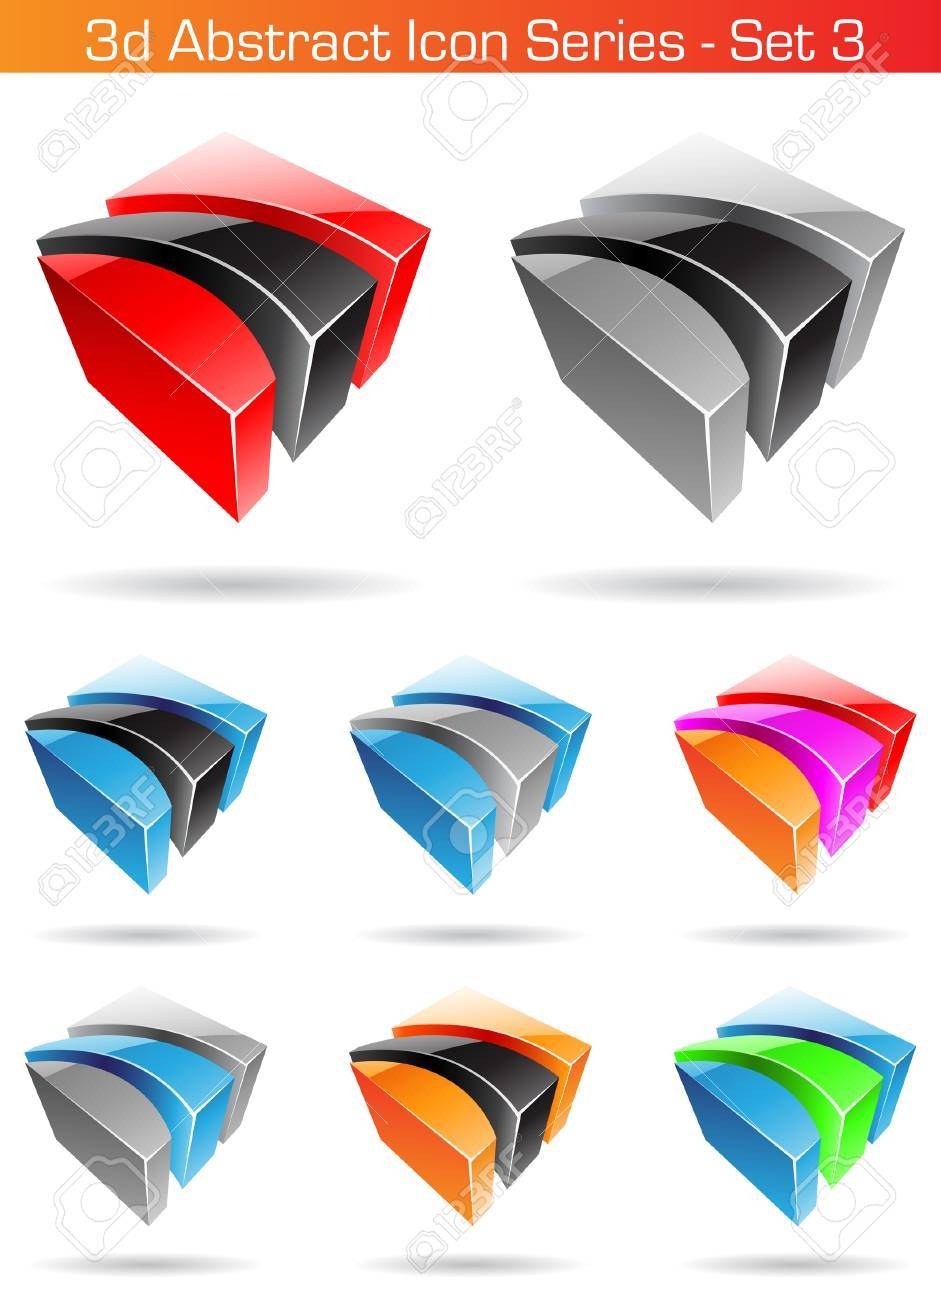 Vector EPS illustration of 3d Abstract Icon Series - Set 3 Stock Vector - 5488713